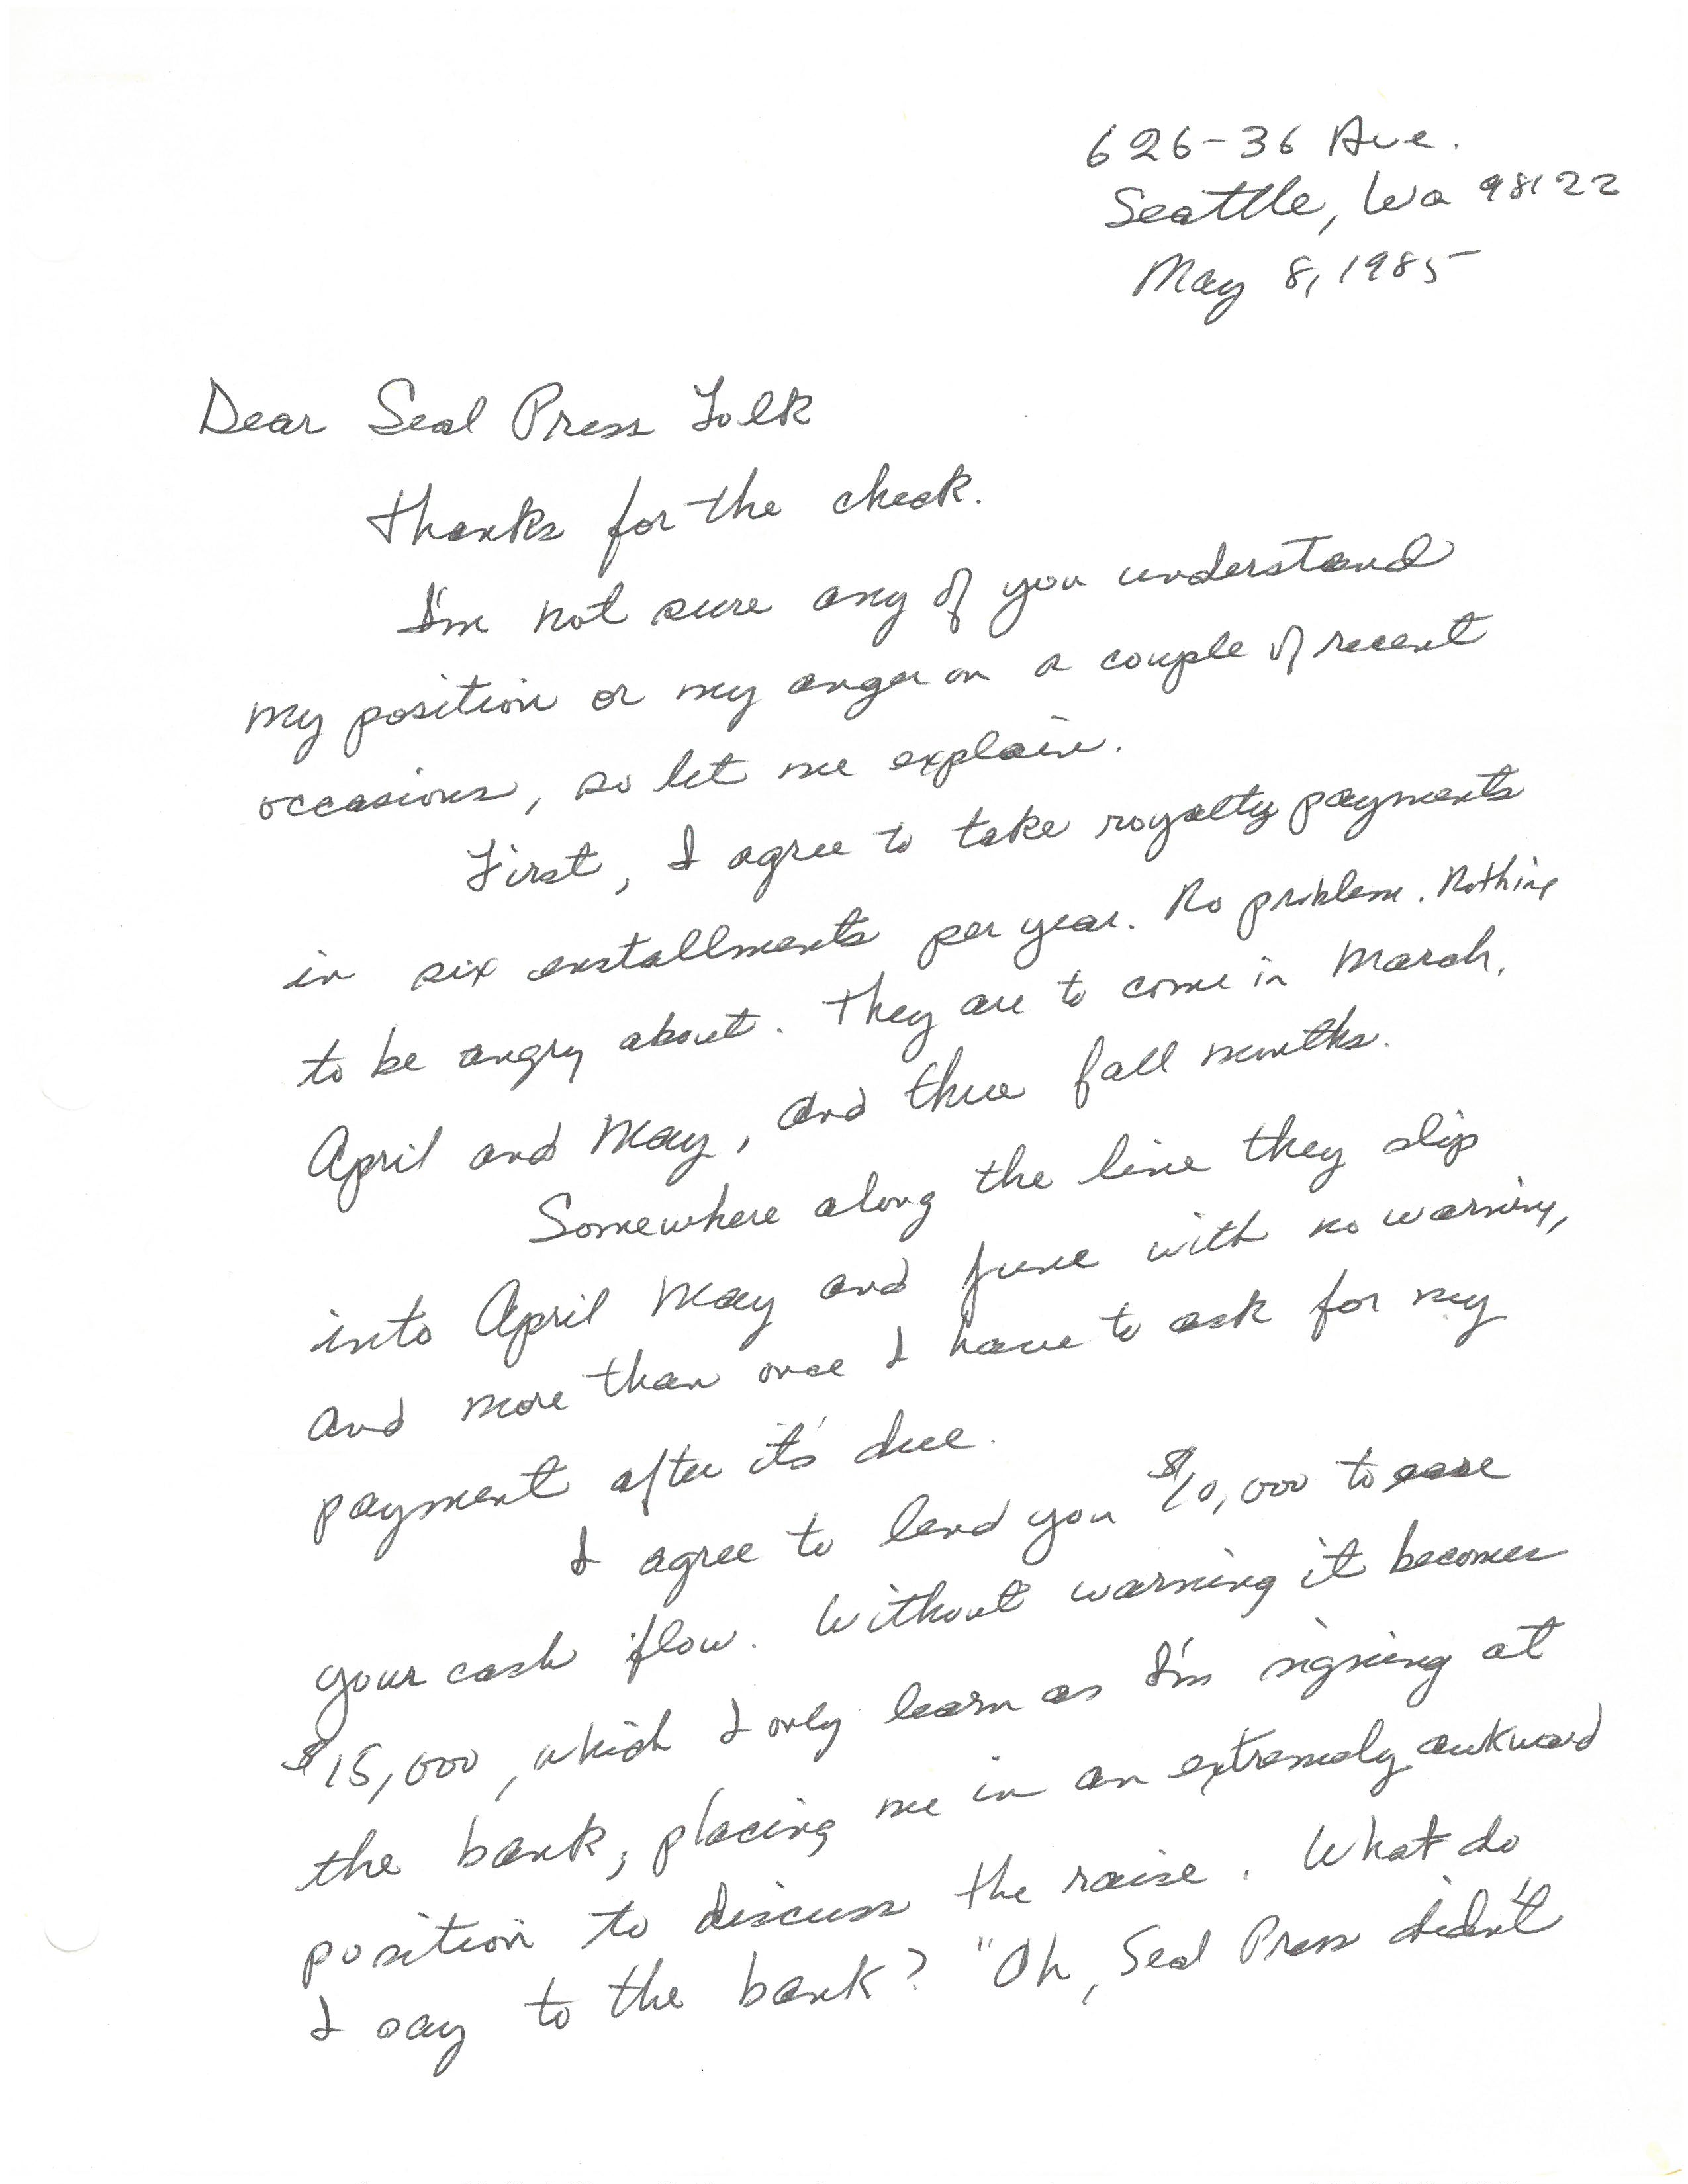 may 1985 letter pt1